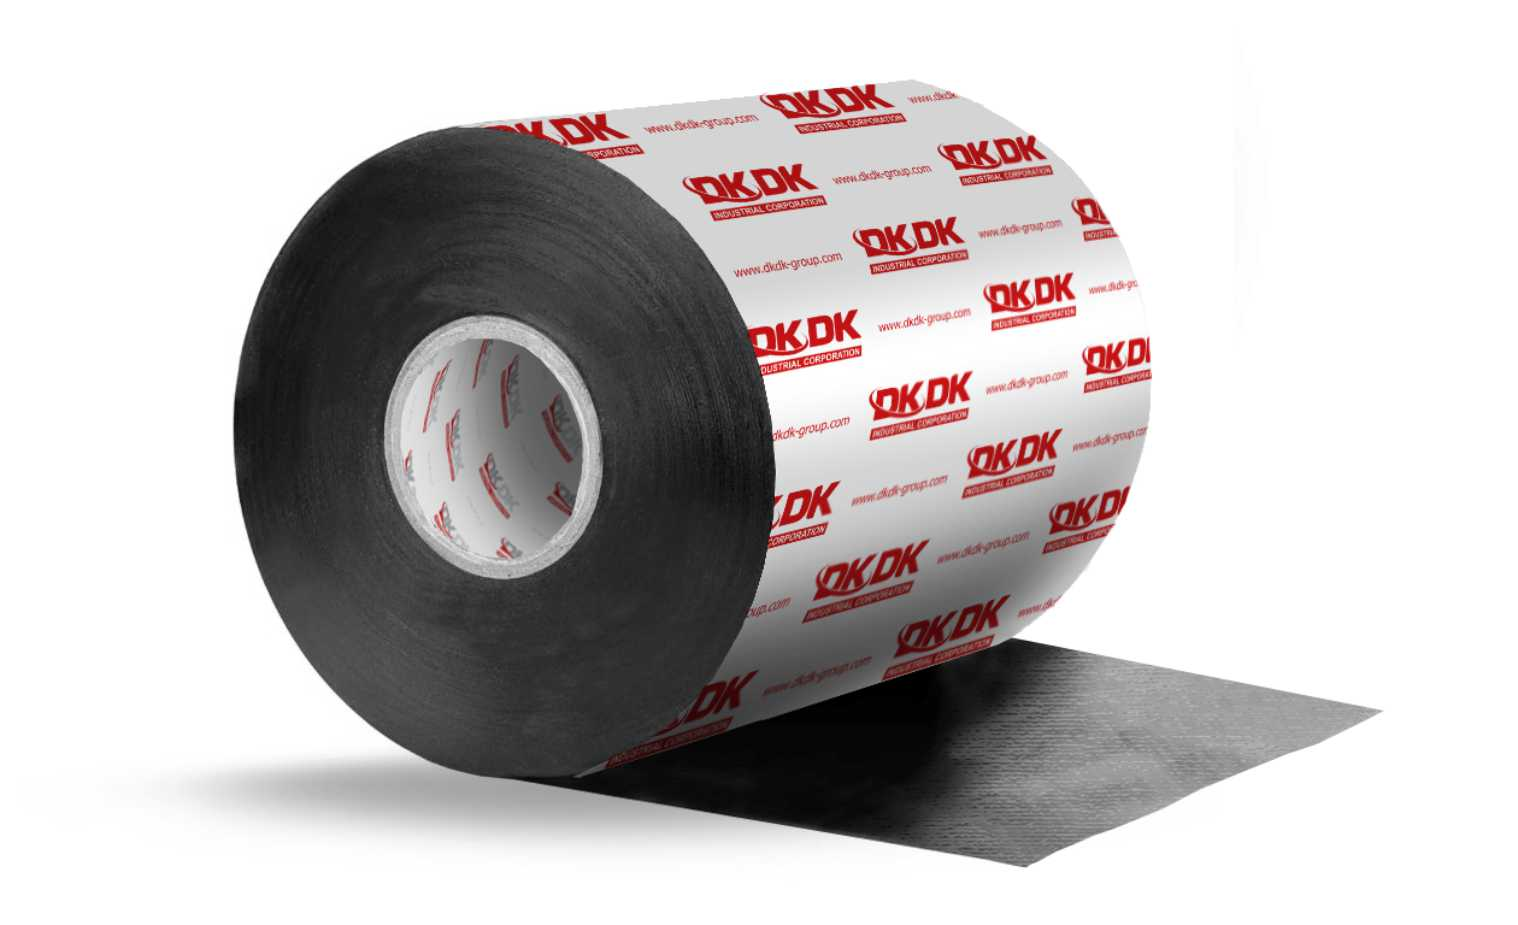 Illustration insulation JOIN WRAP DK-BUT®HB1000 ROLL